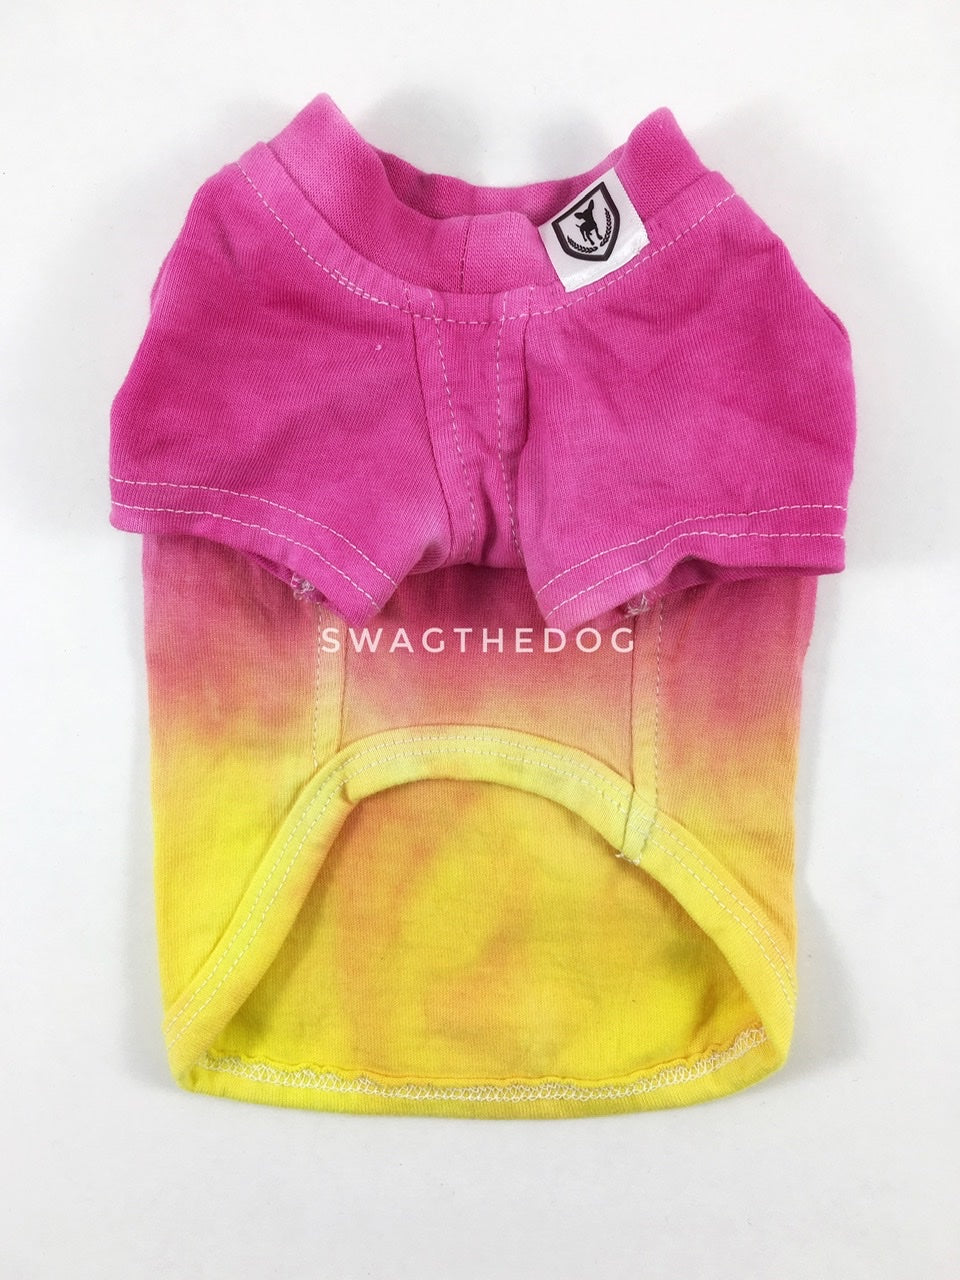 Swagadelic Summer Sunset Ombré Tie Dye Tee - Product front view. The hand tie-dyed tee with Pink and Yellow